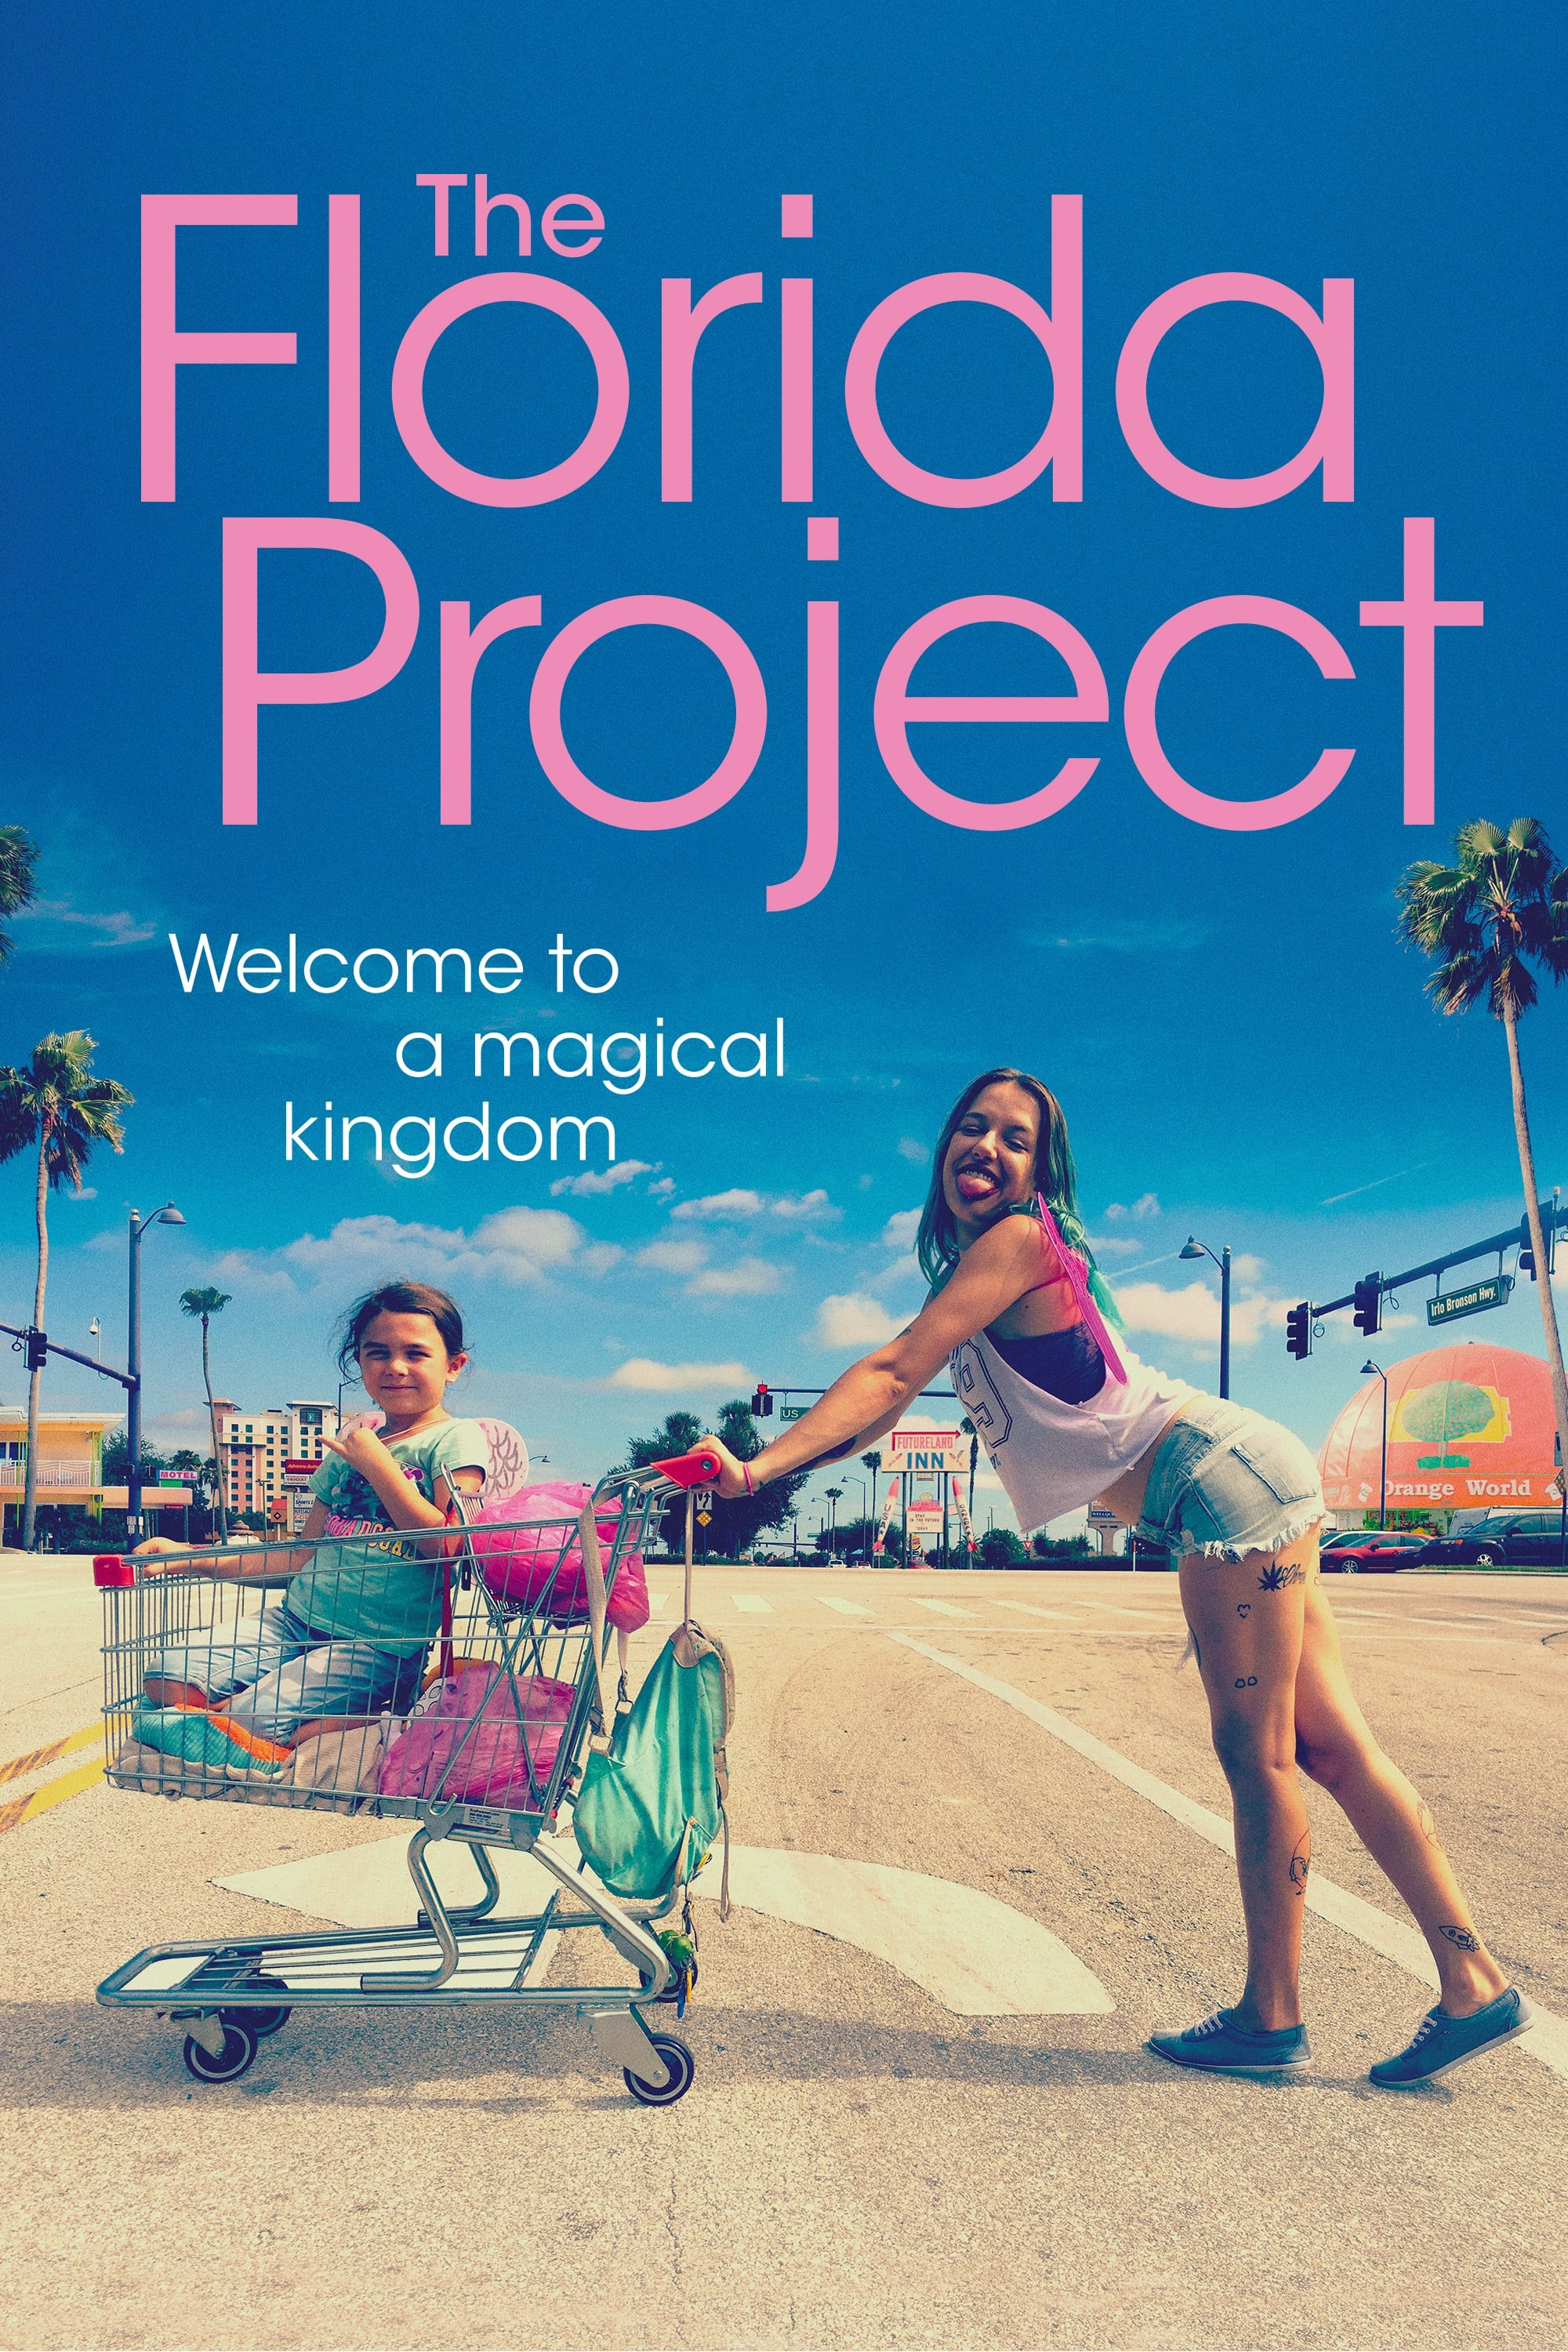 The Florida Project Berlin